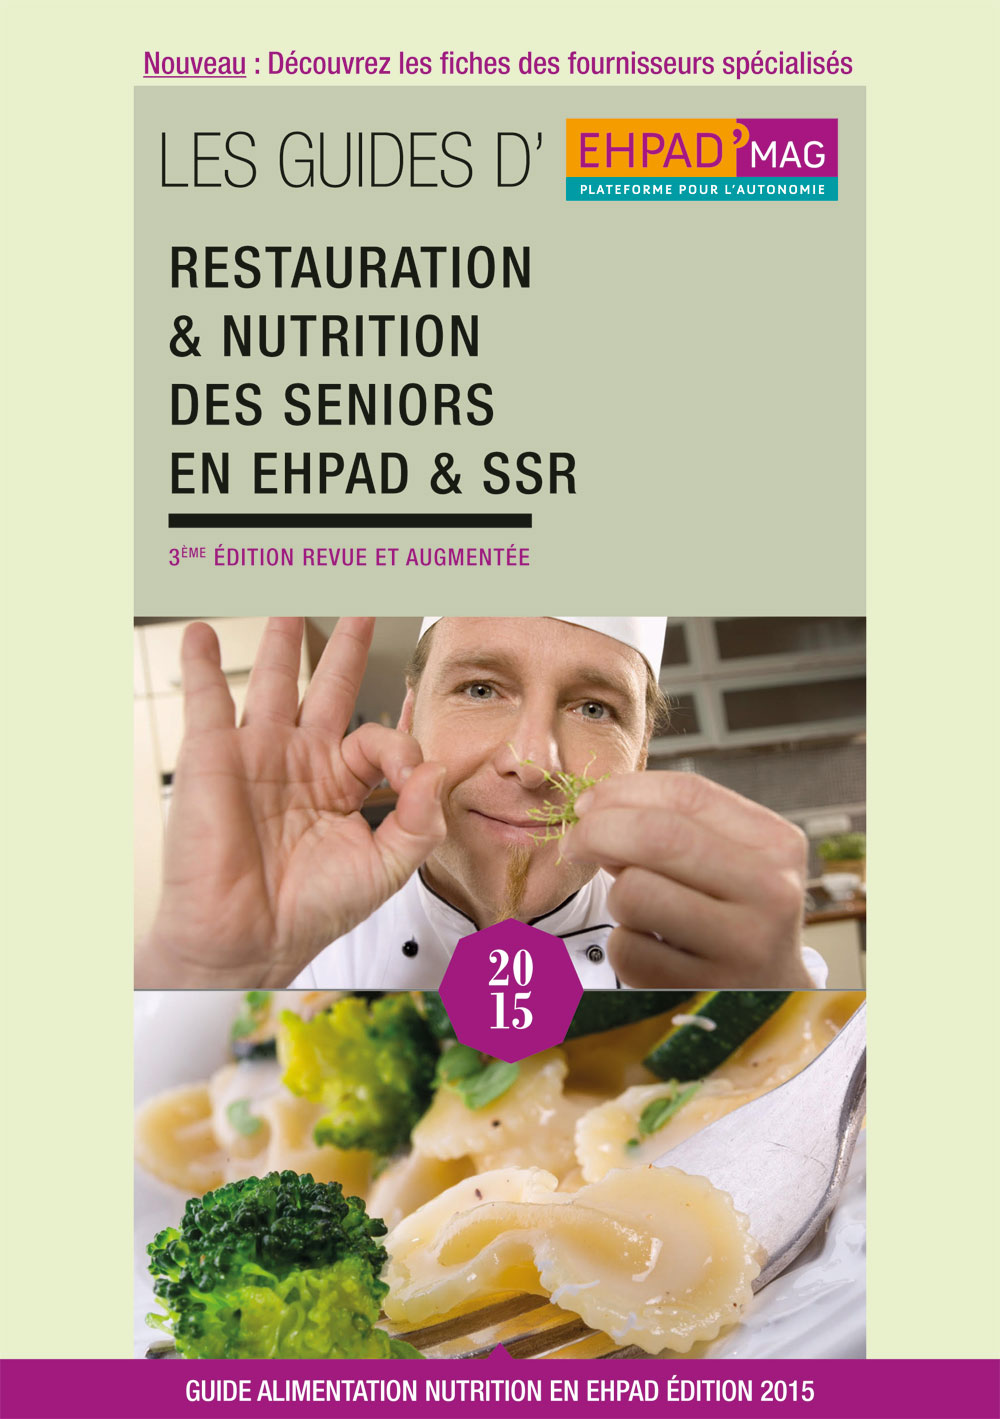 3-EME-EDITION-GUIDE-RESTAURATION-ET-NUTRITION-2015---EHPAD-MAG-1